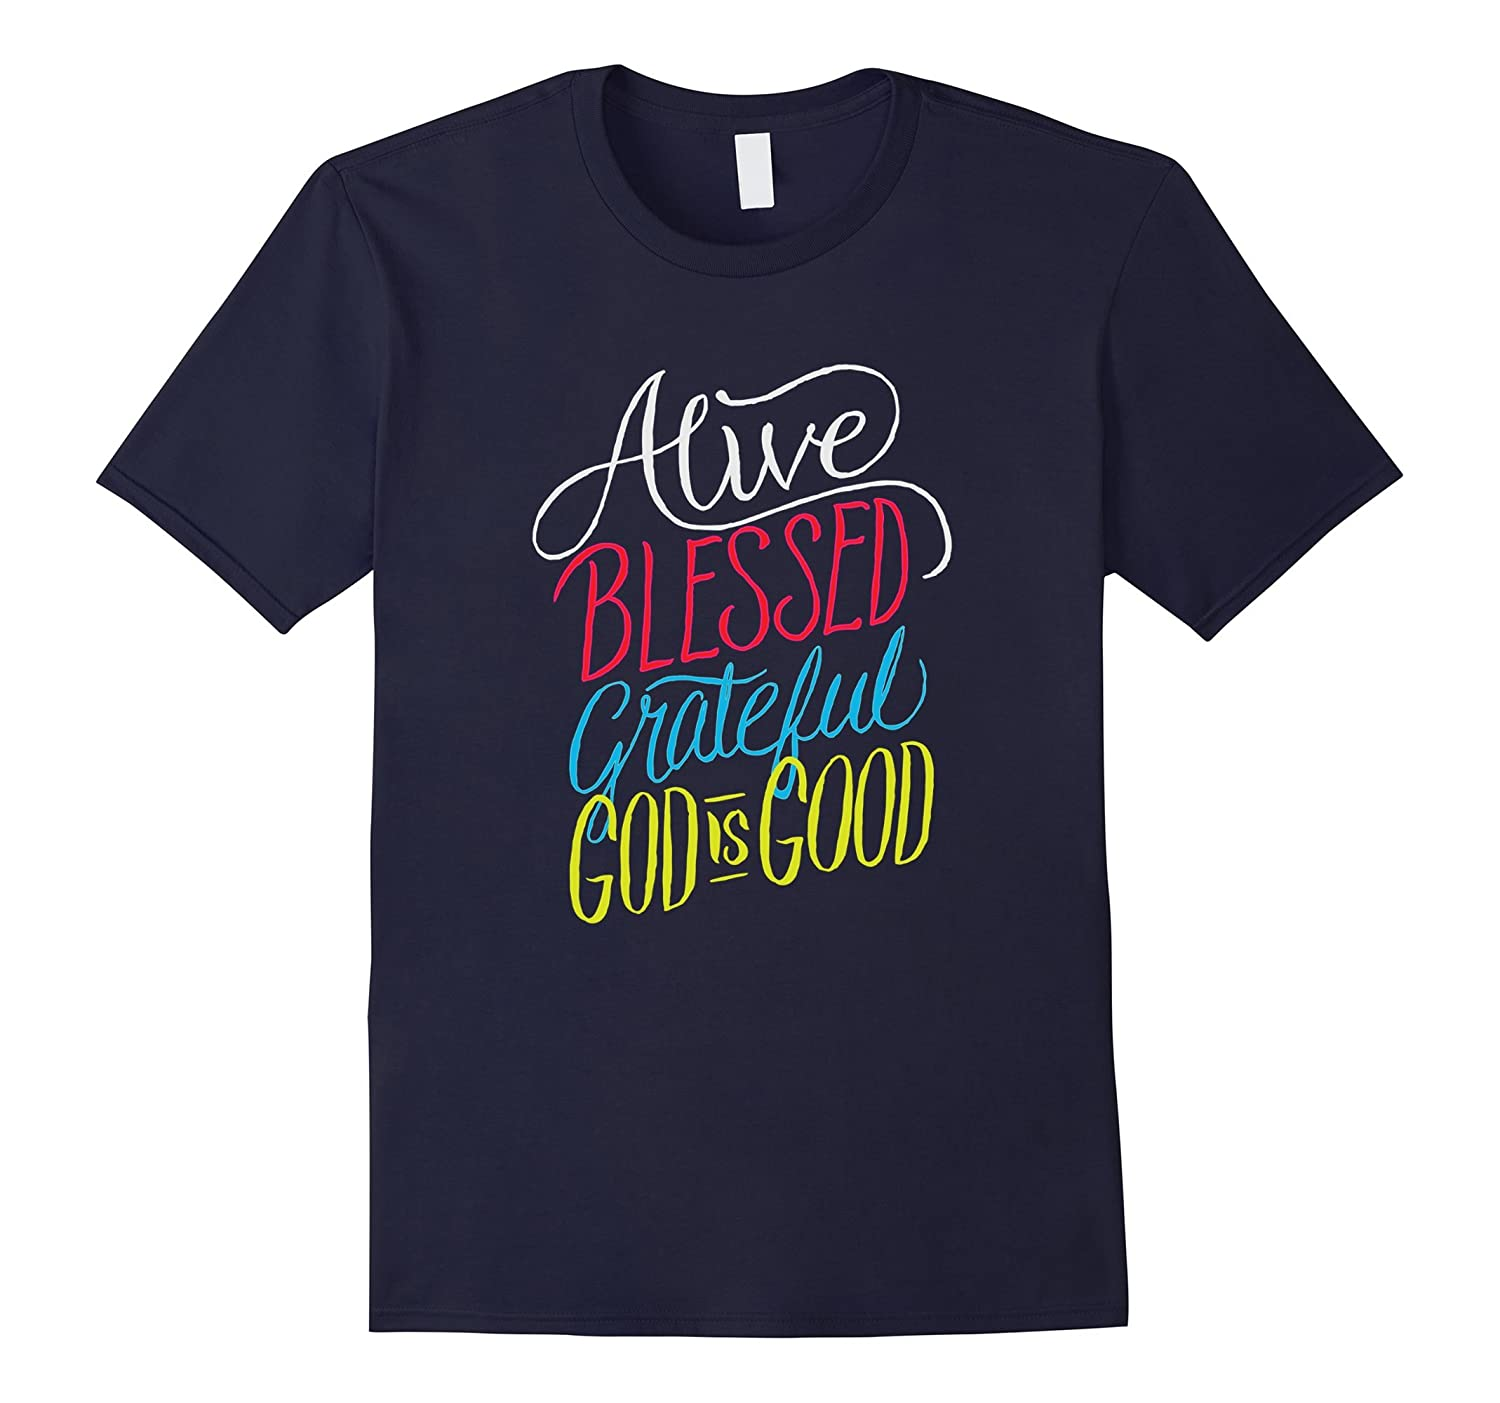 Alive Blessed Grateful - God is Good - Christian T Shirt-BN